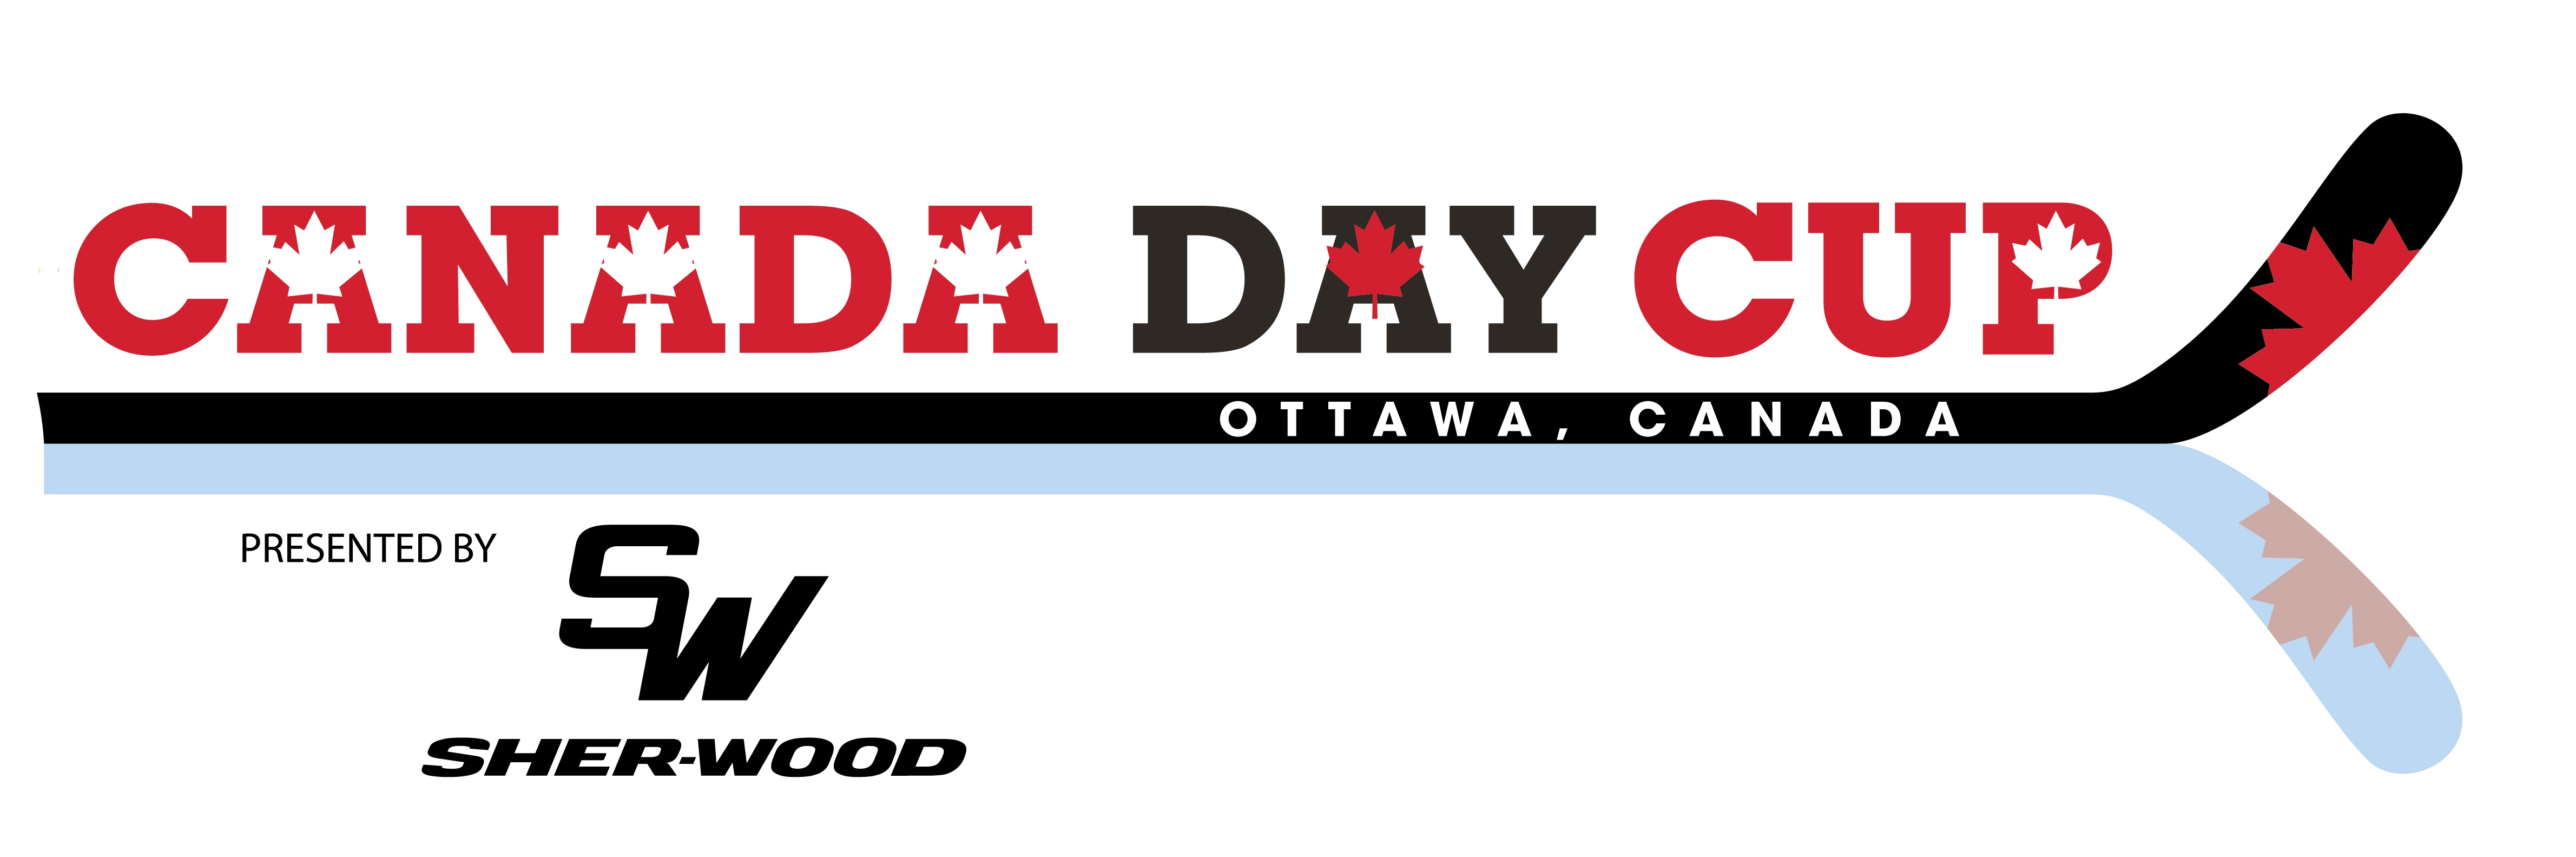 8TH Annual Canada Day Cup Logo